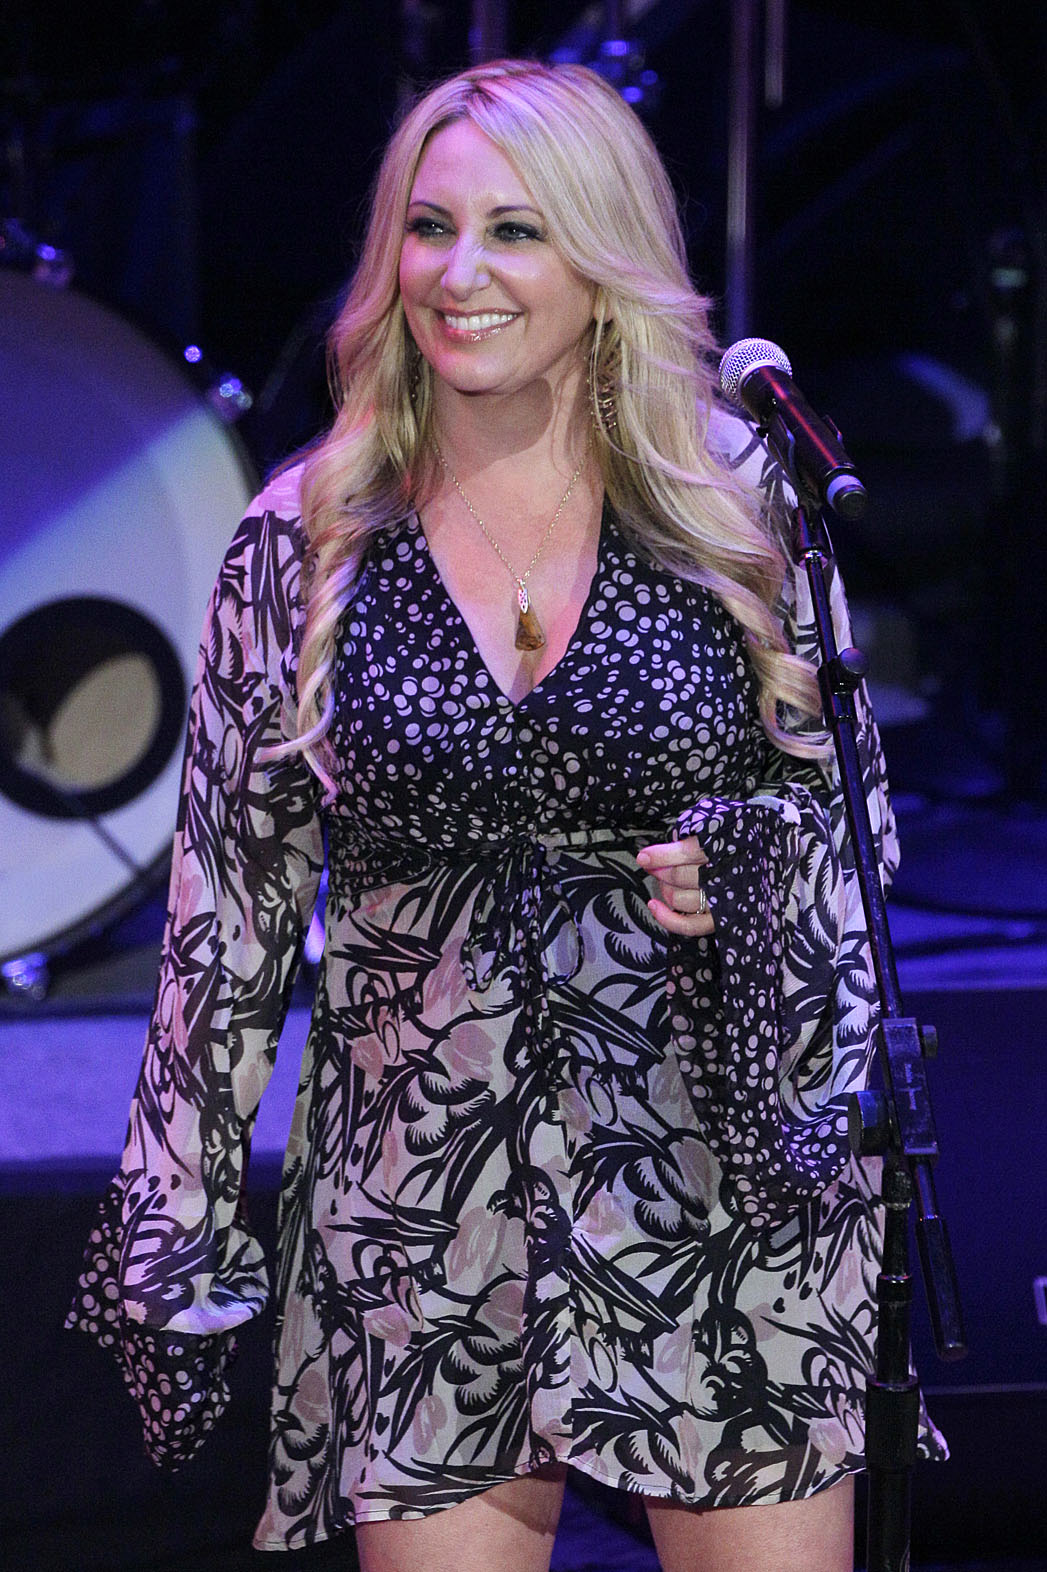 Lee Ann Womack Performs - P 2014